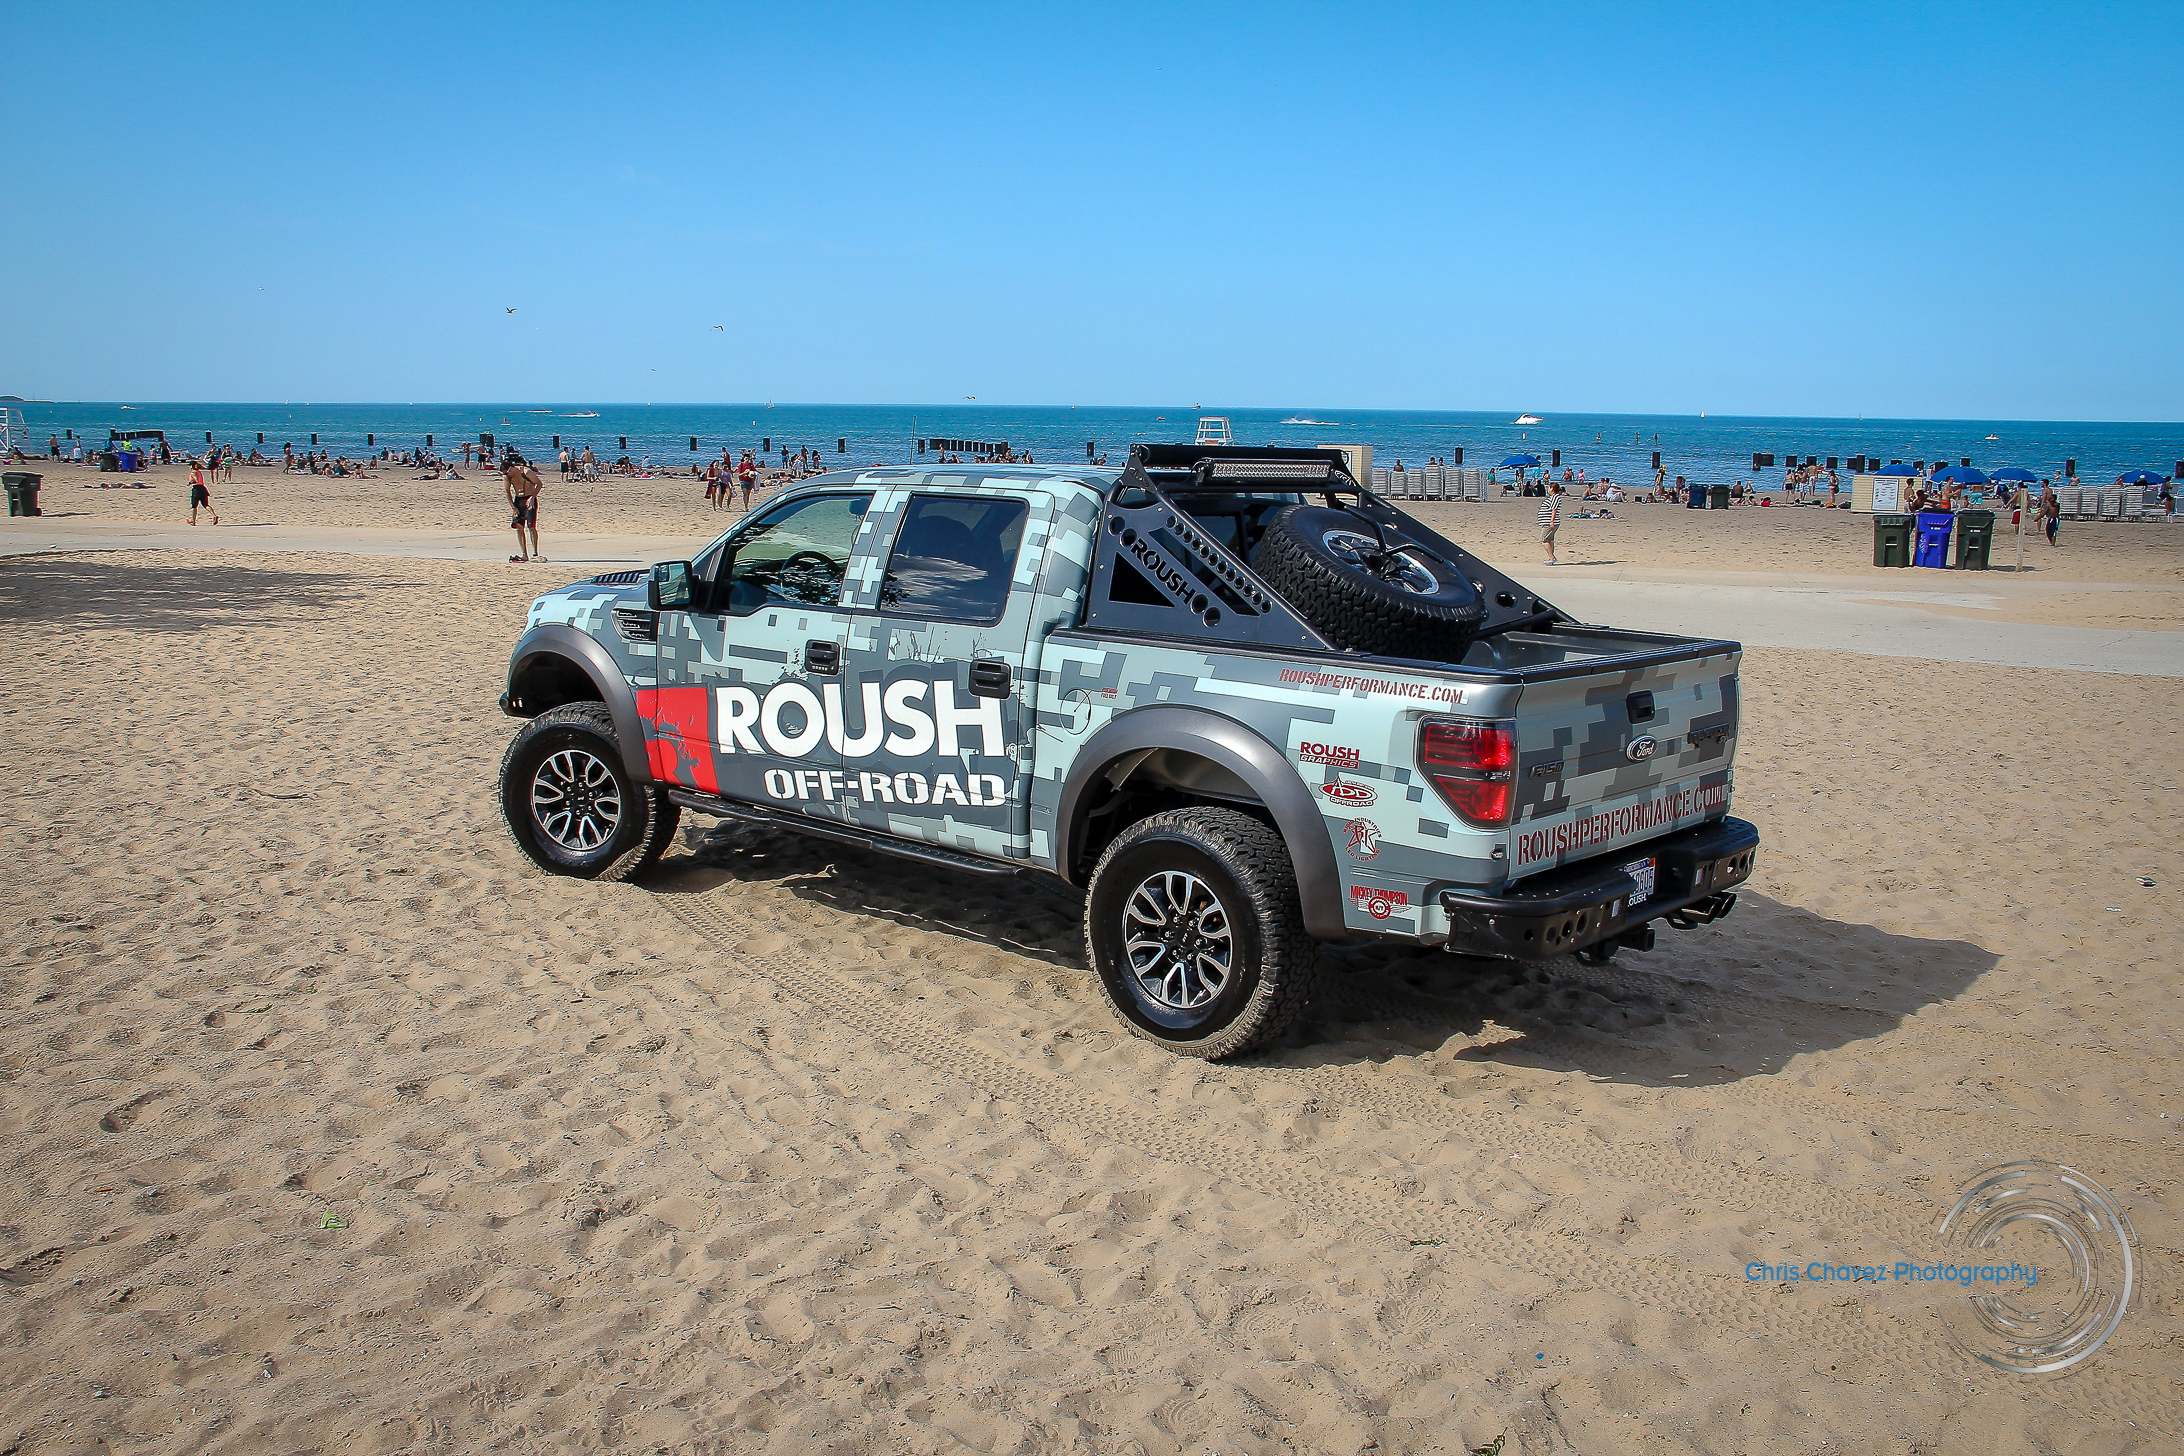 Roush.f150.wm.jpg